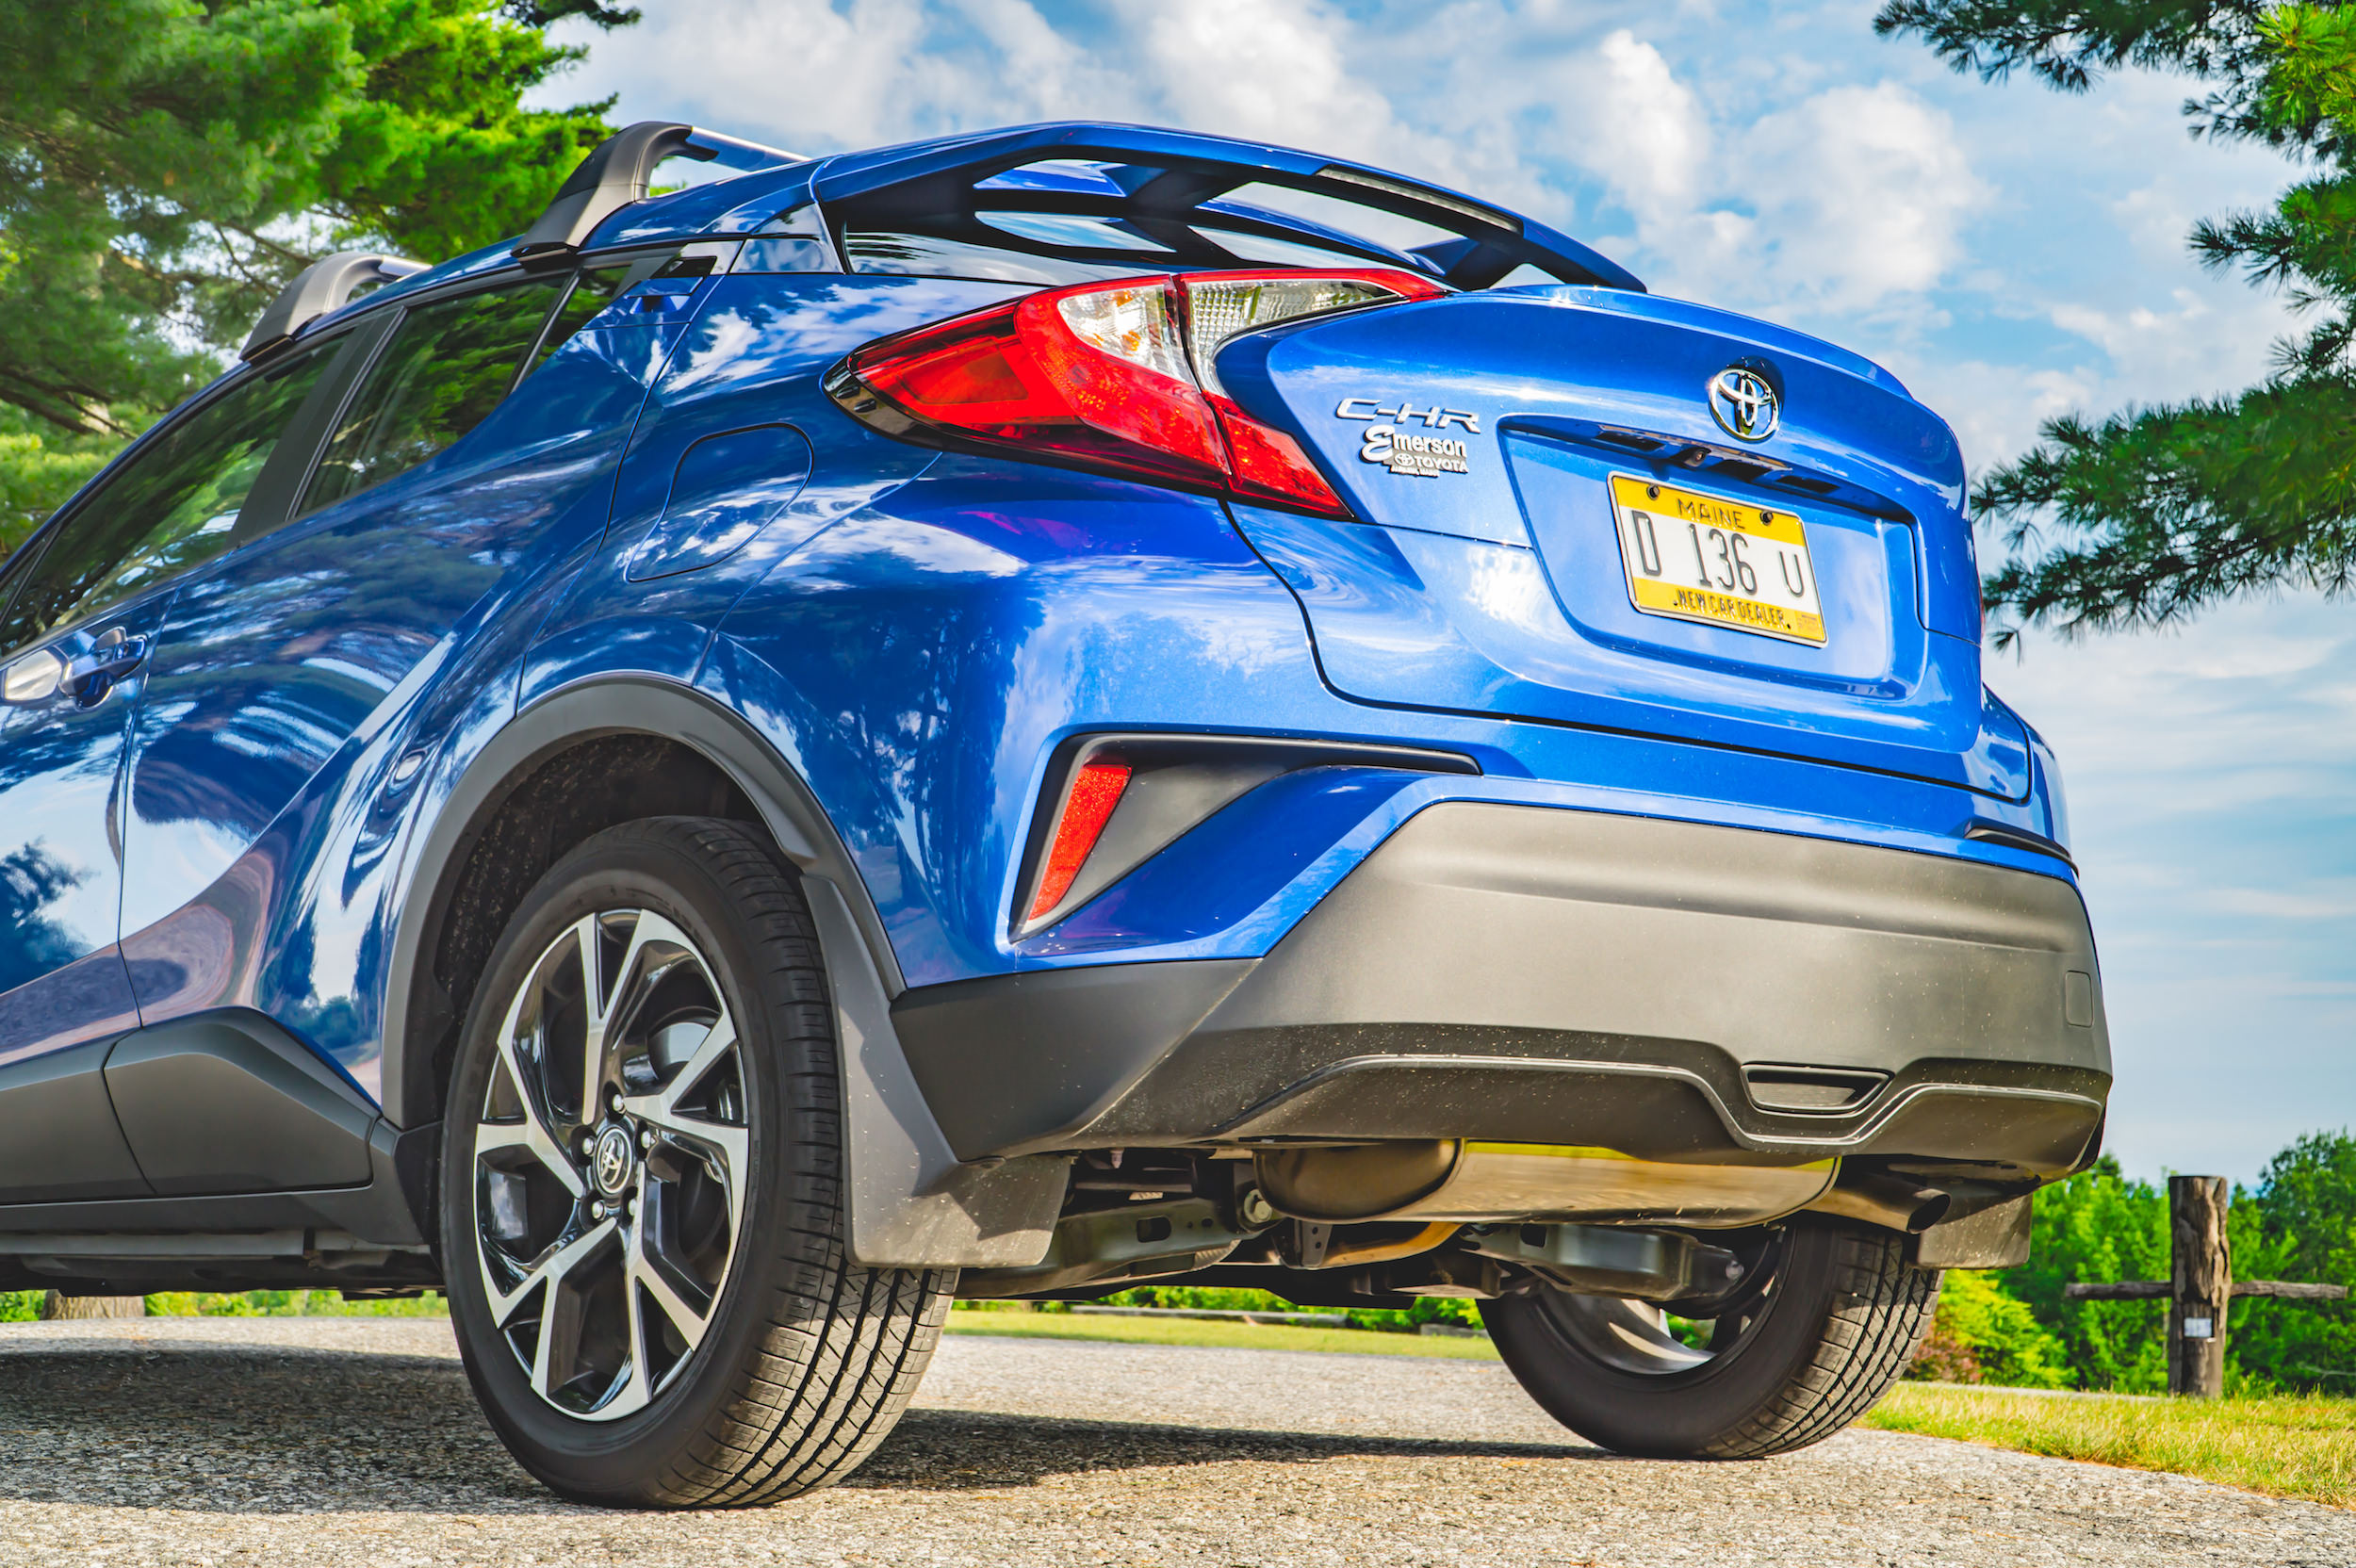 2018 Toyota C-HR rear spoiler